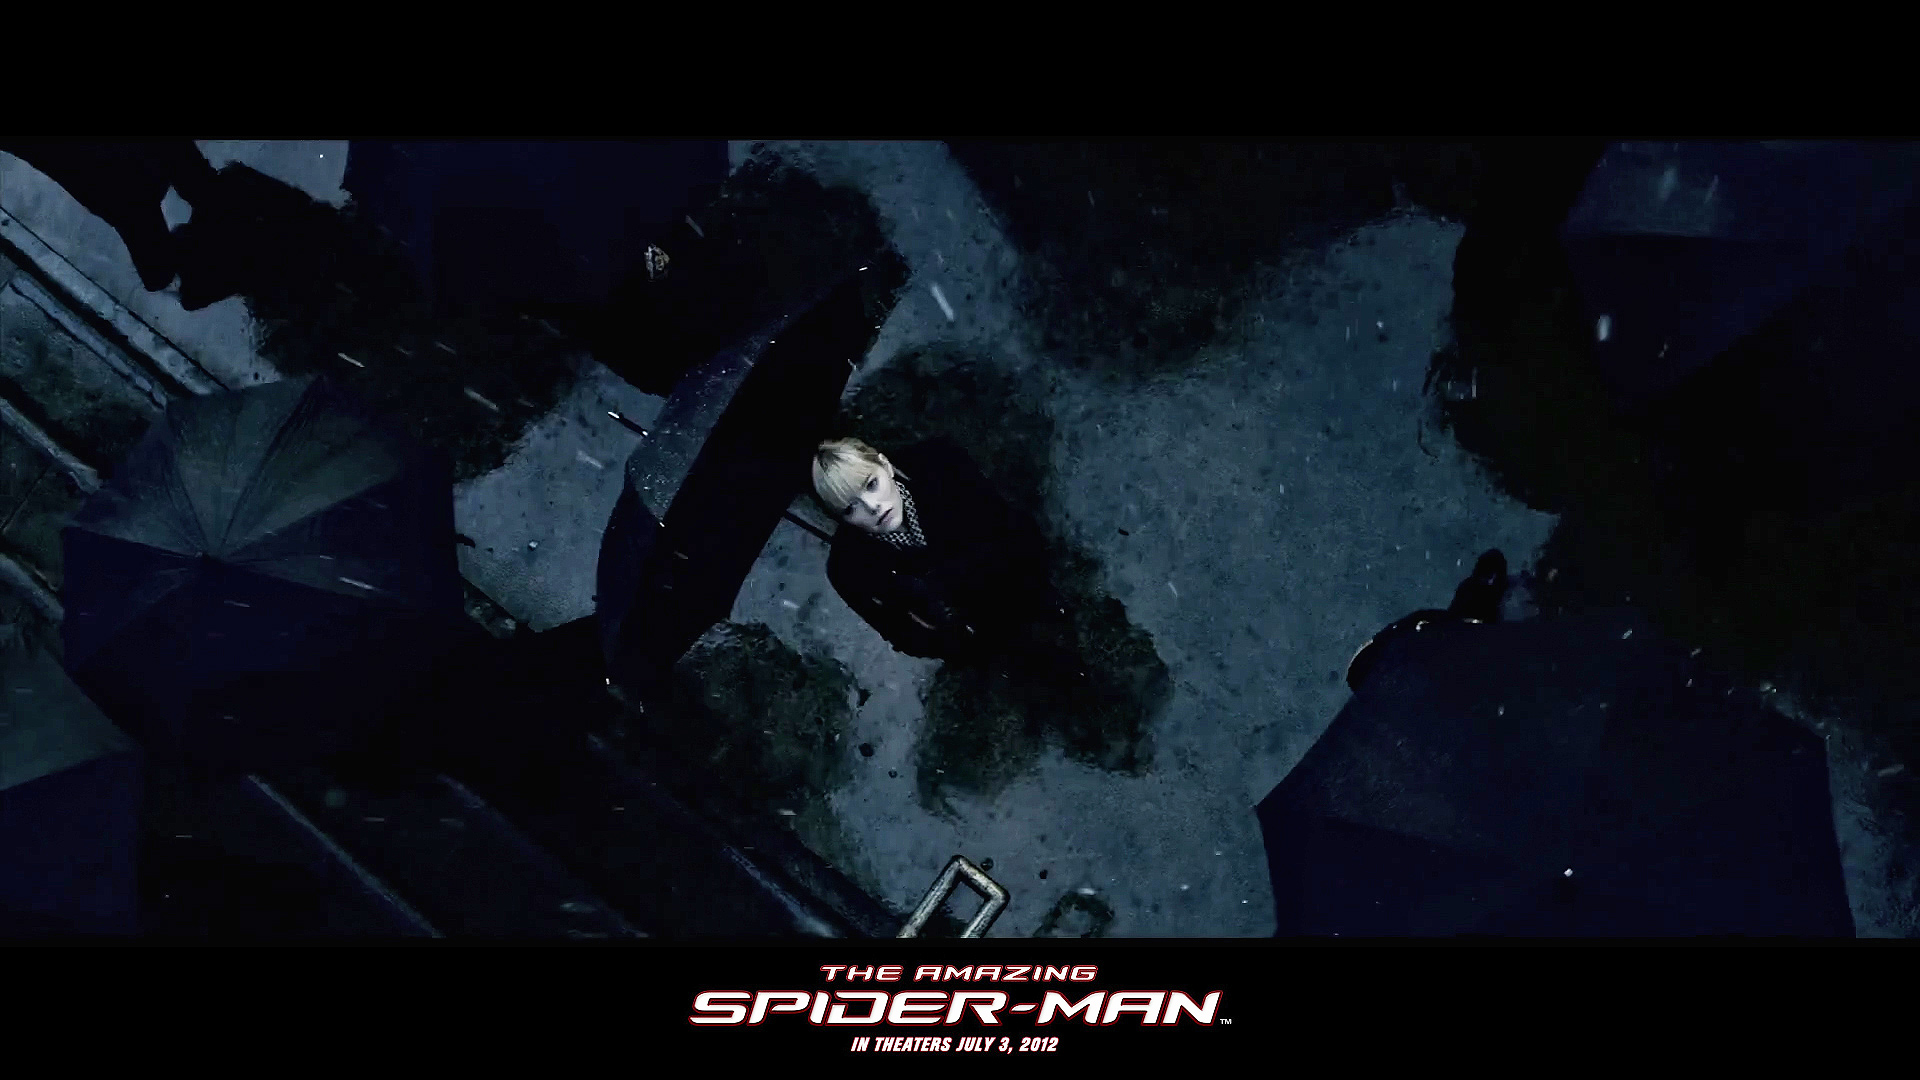 The Amazing Spider-Man wallpaper 3